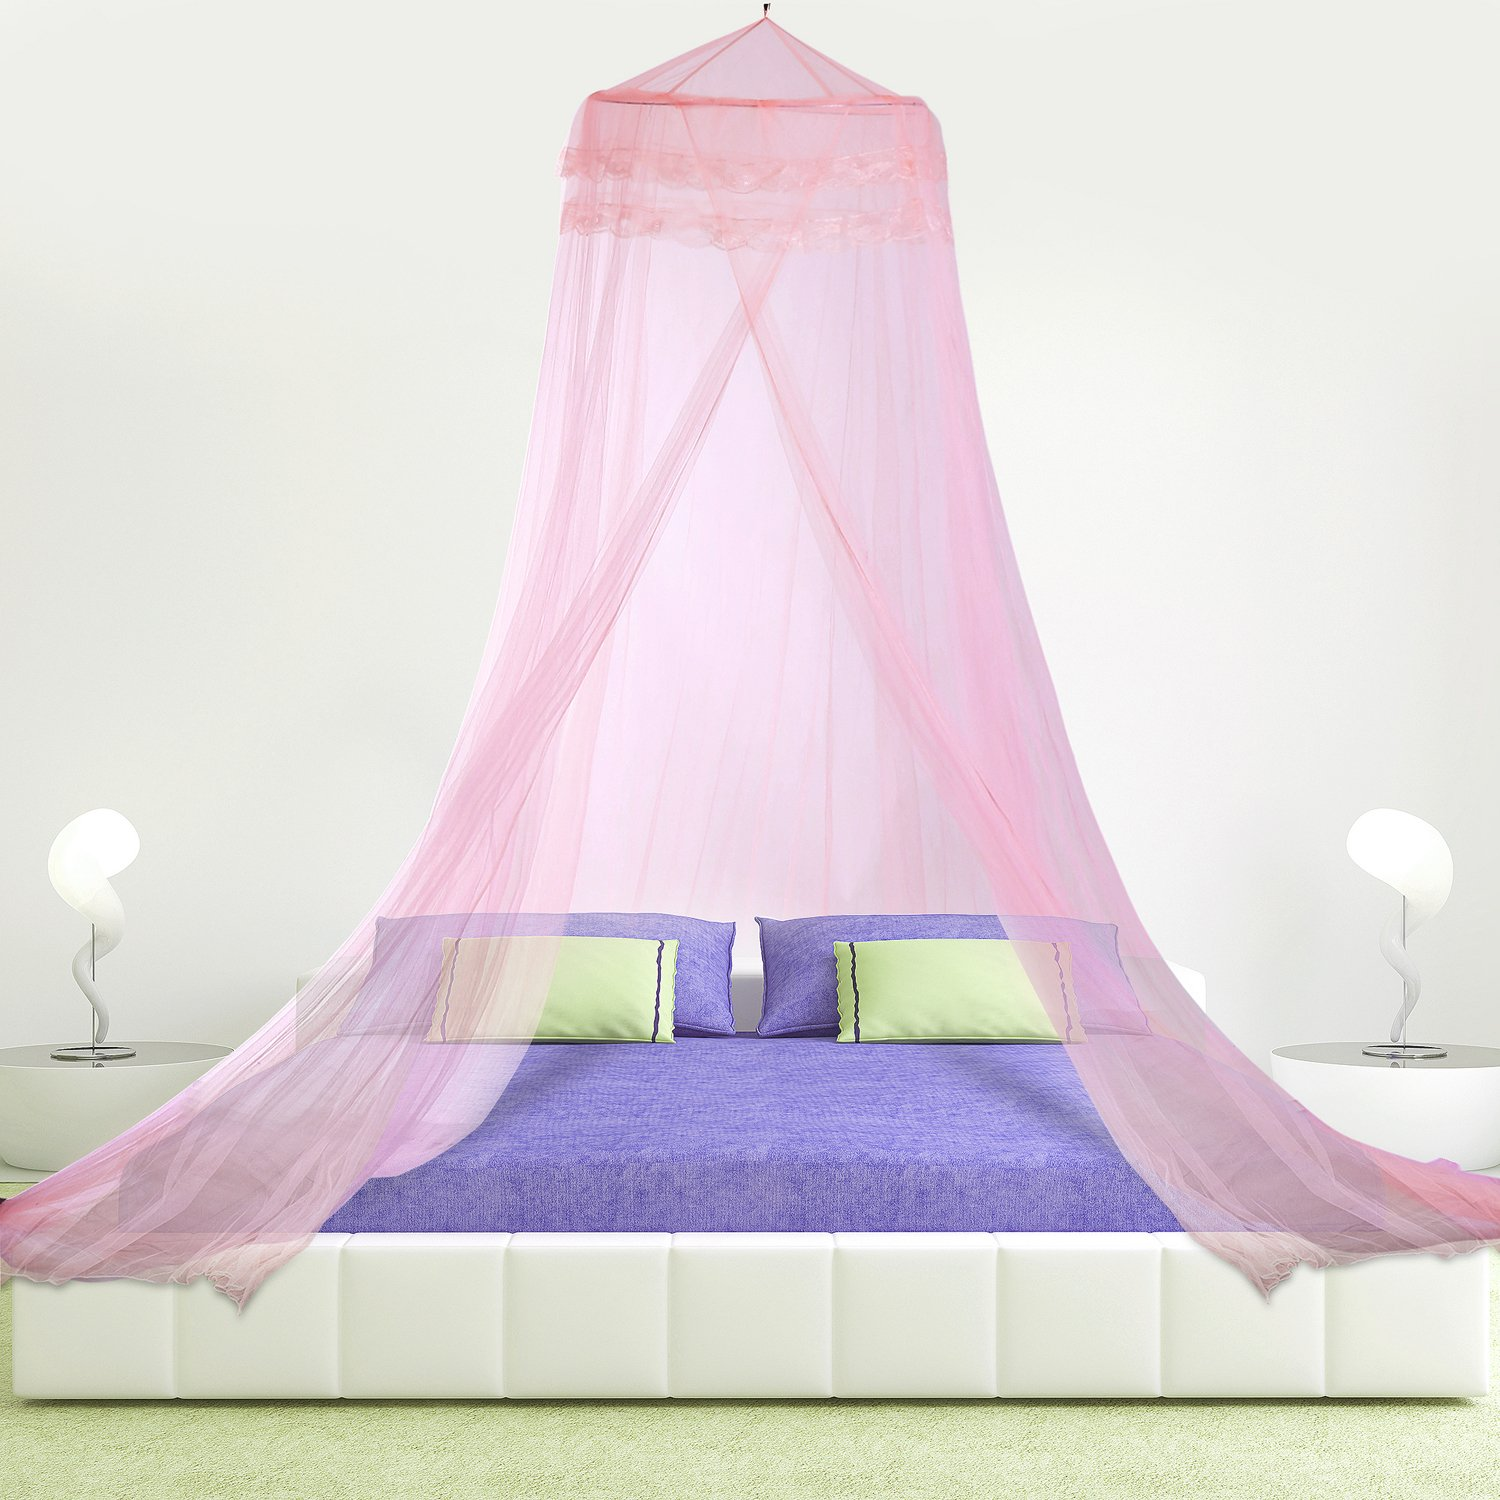 HIG Mosquito Net Bed Canopy Lace Dome, Full, White COMIN18JU012793